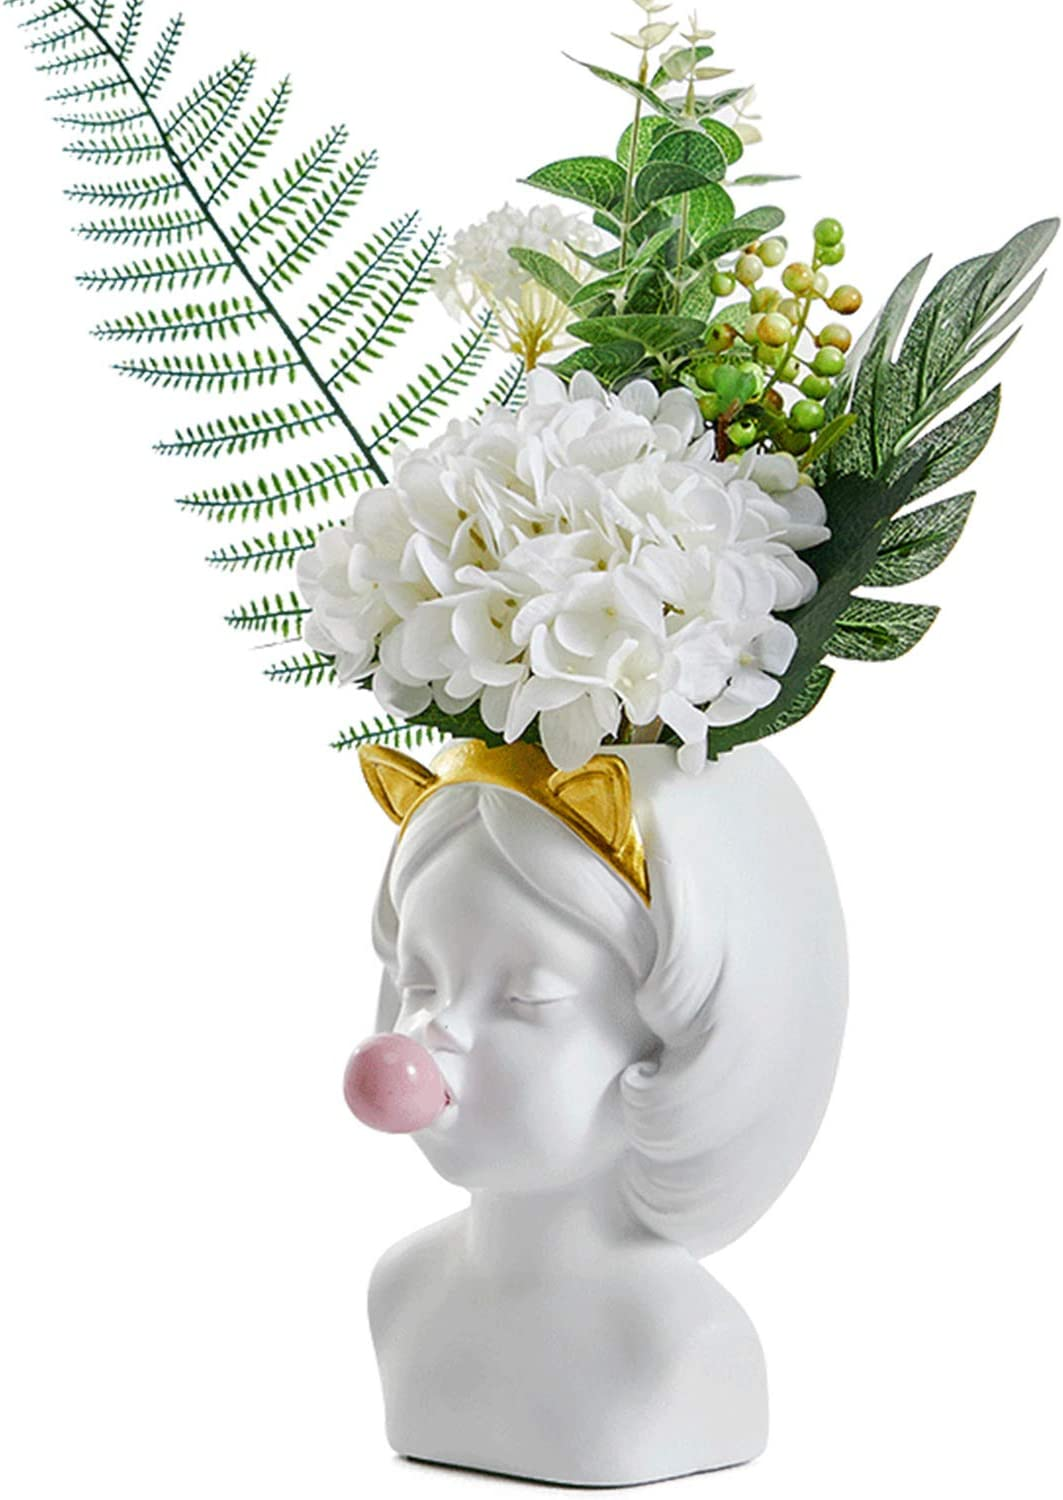 8.9inch Large Size White Resin Blowing Bubbles Girl Cute Creative Vase Decoration Ornaments Flowers Bottle Pot Dry Vase for Decor Home Living Room Table Art Statue (Cat)